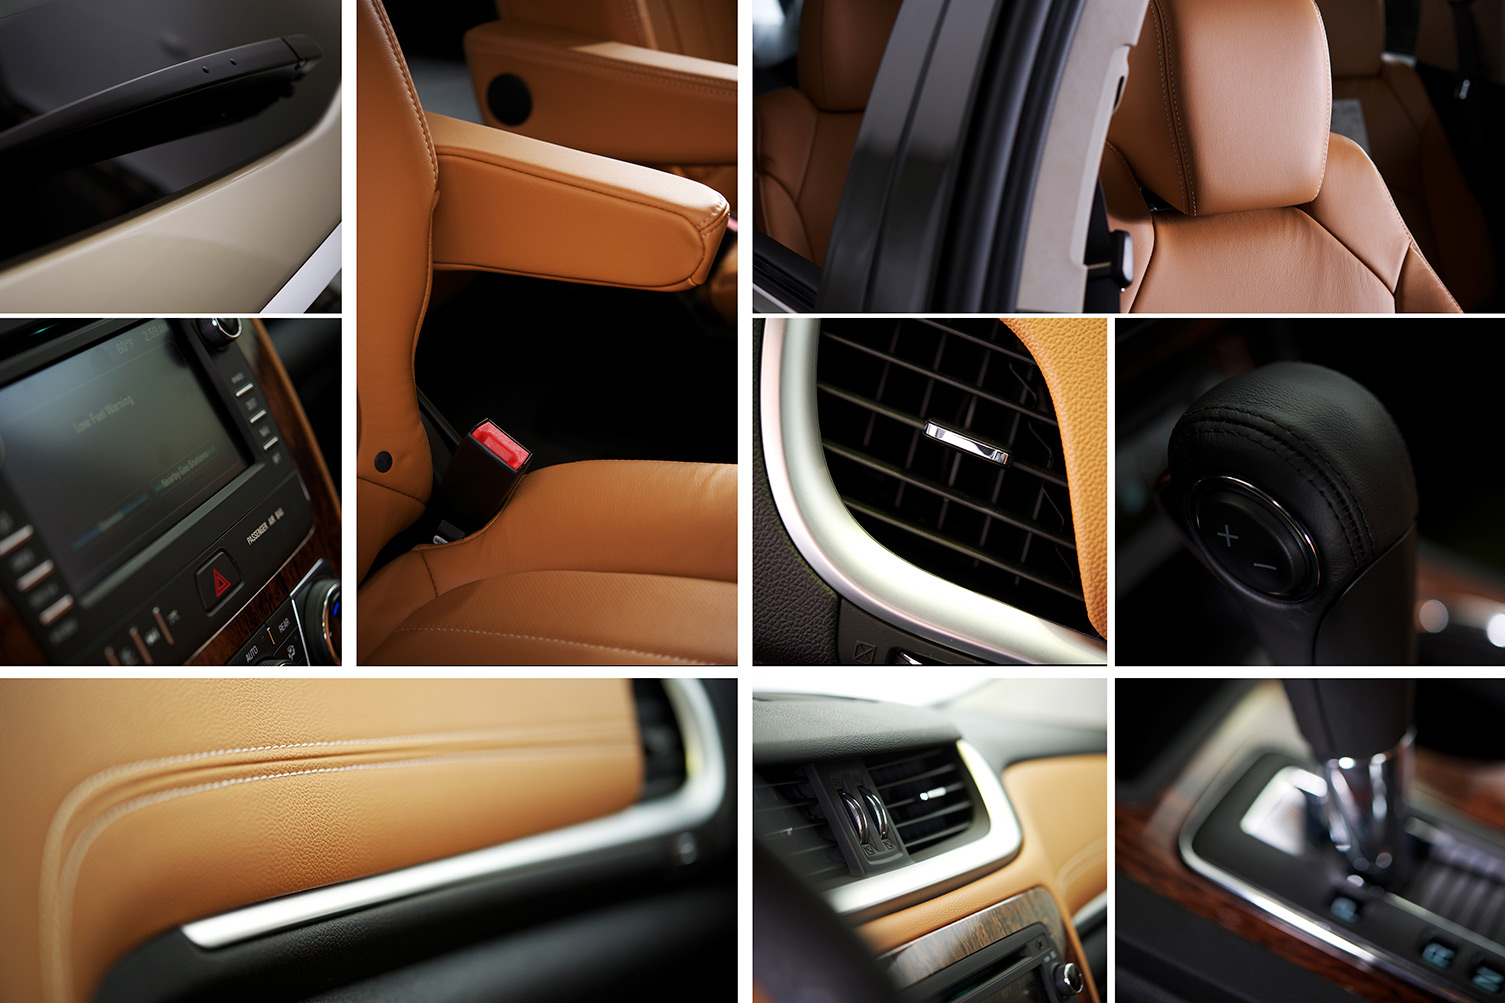 A collage of the interior of a car